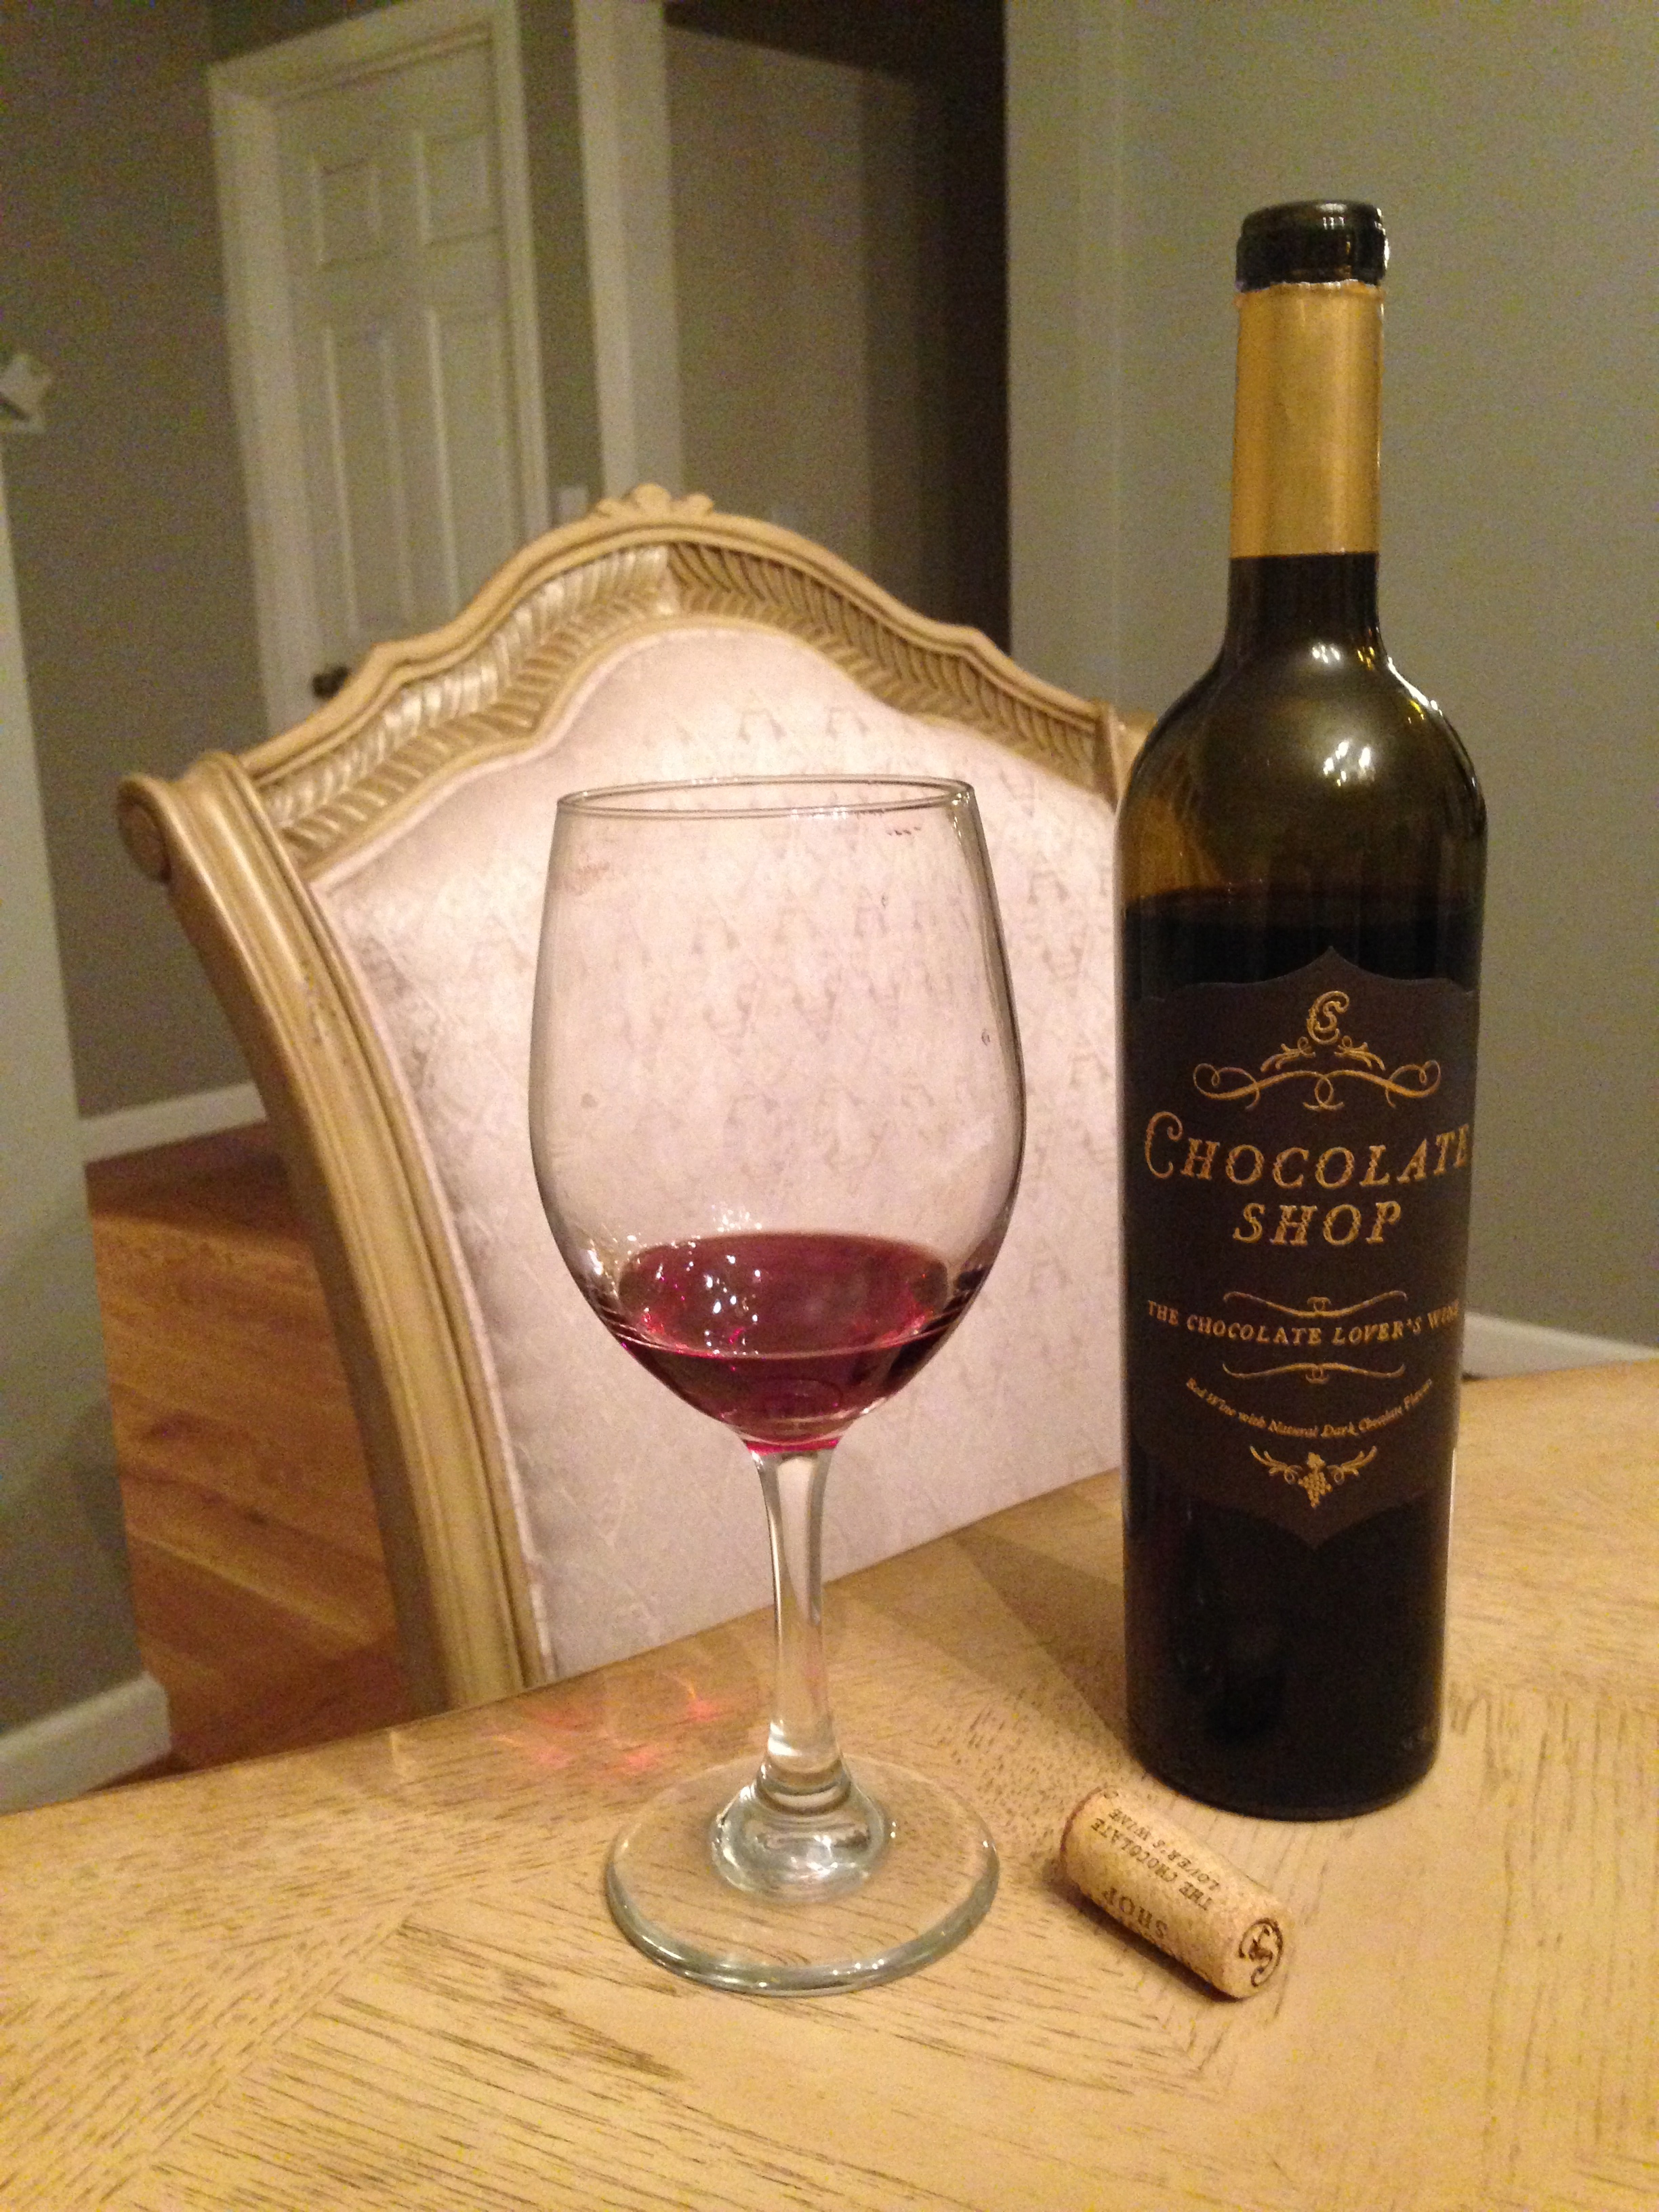 Wine Fear Factor Friday! Chocolate Shop, Chocolate Lover's Wine ...